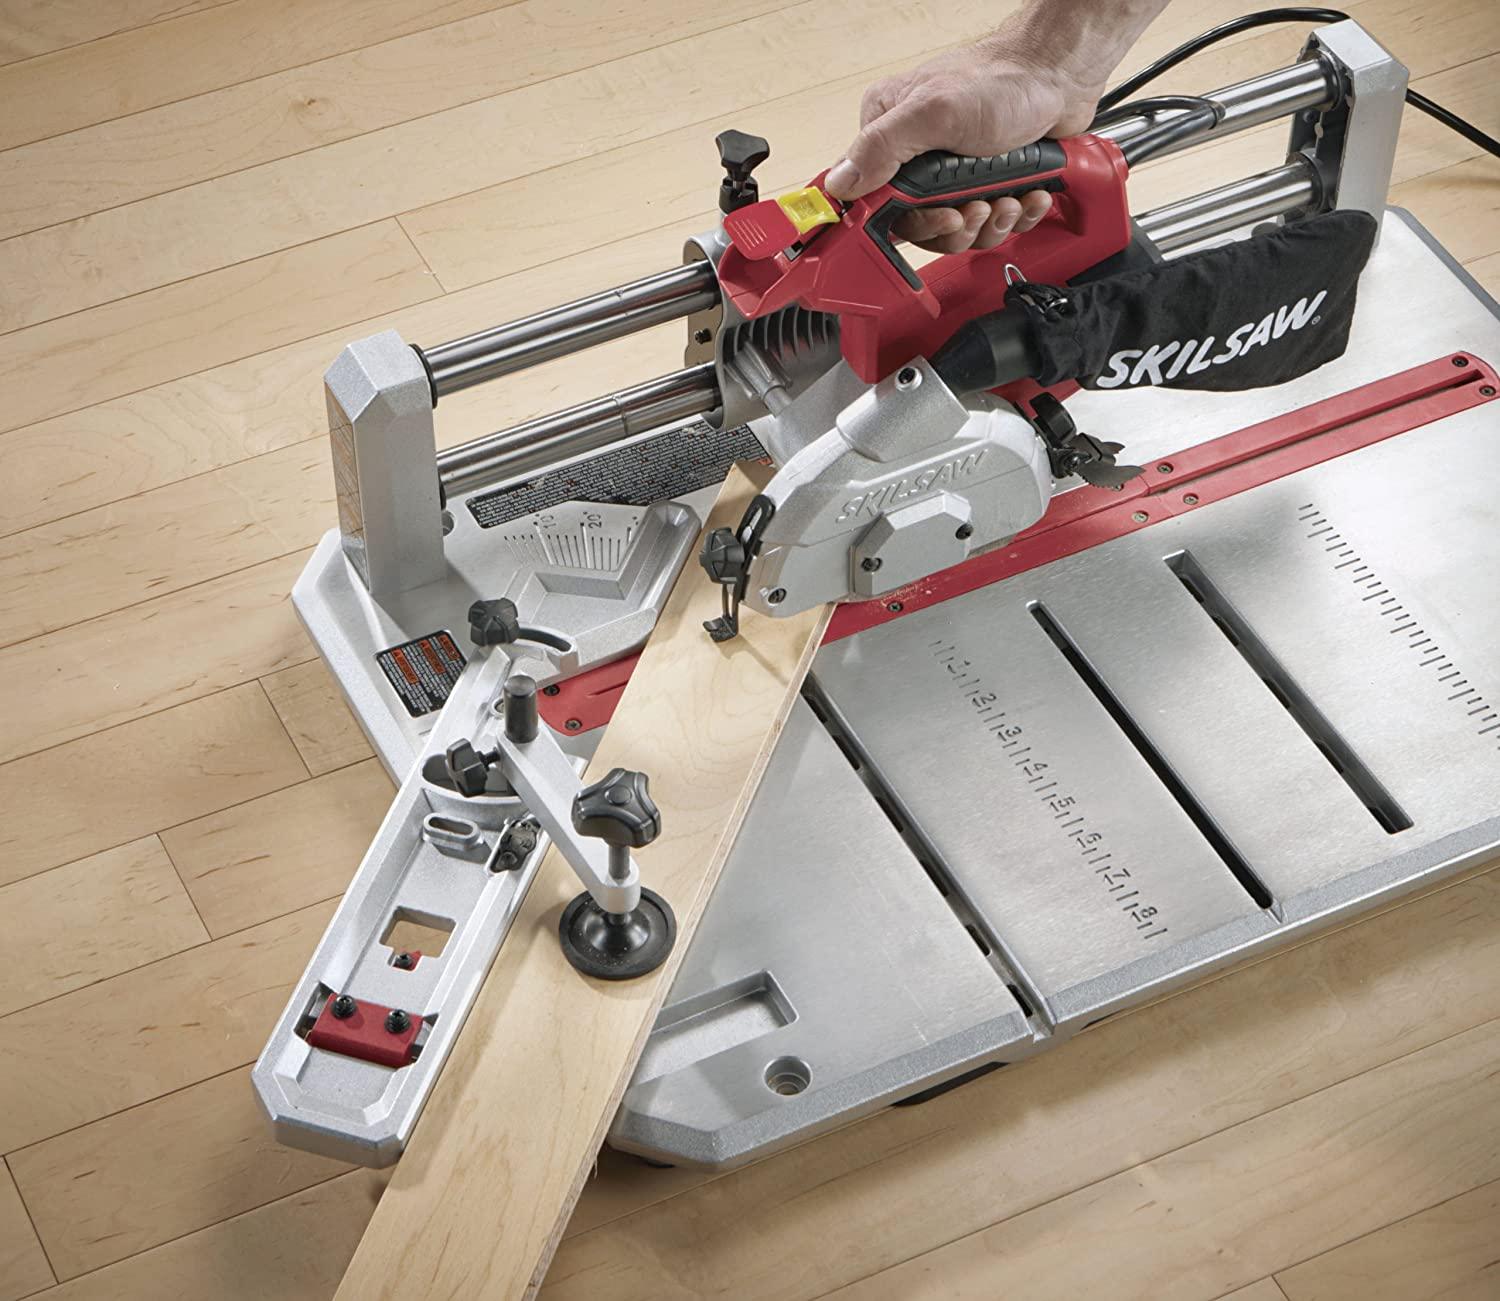 SKIL Flooring Saw Contractor Blade